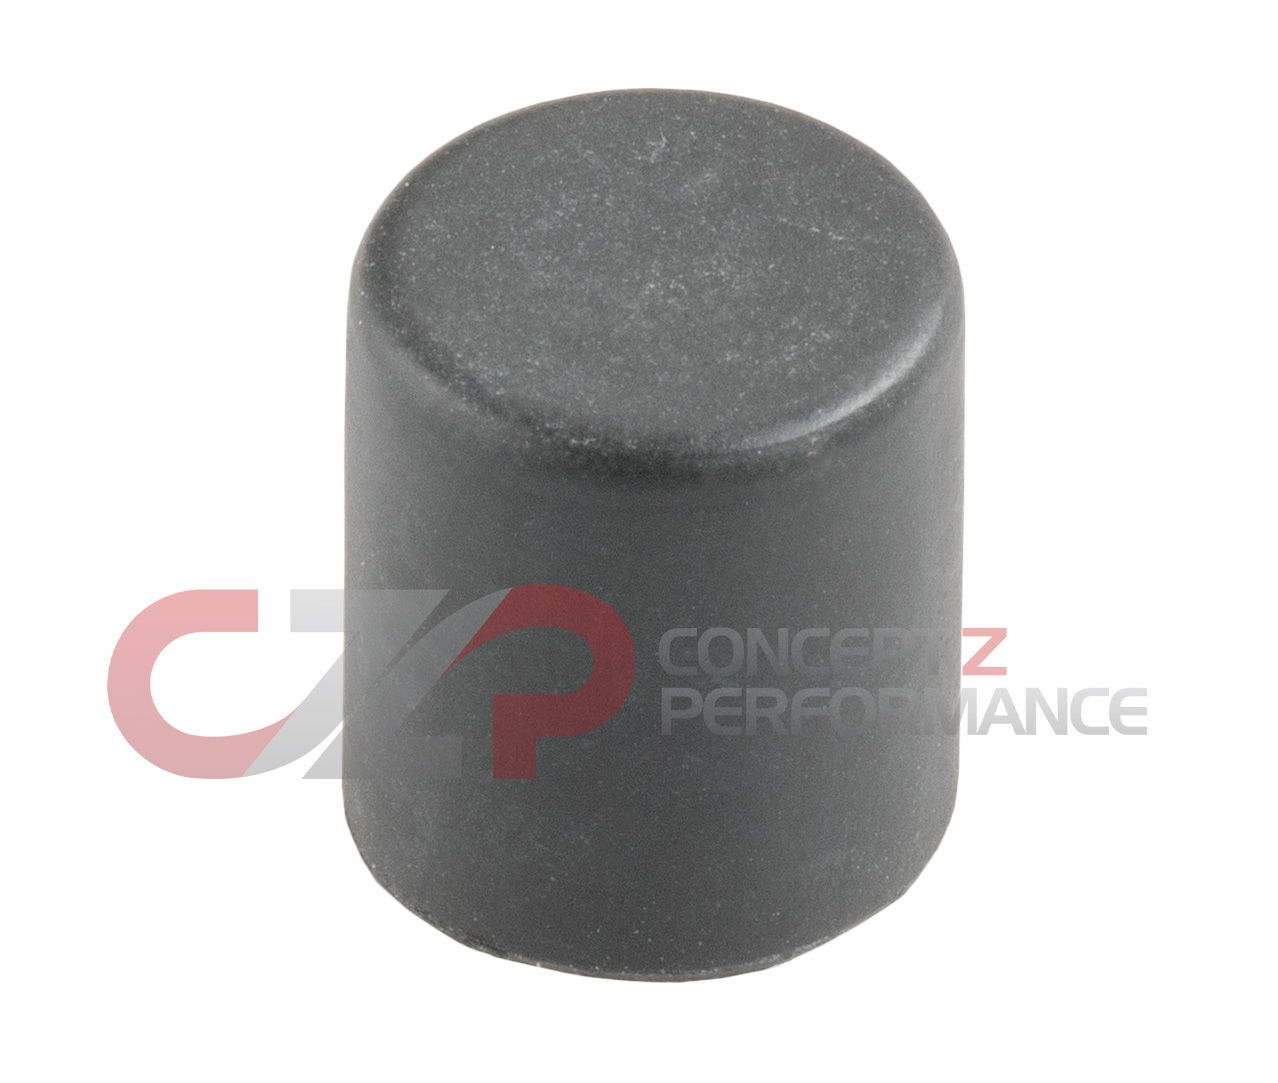 Tein Add Cap - 2 Piece Set (Replacement Part)